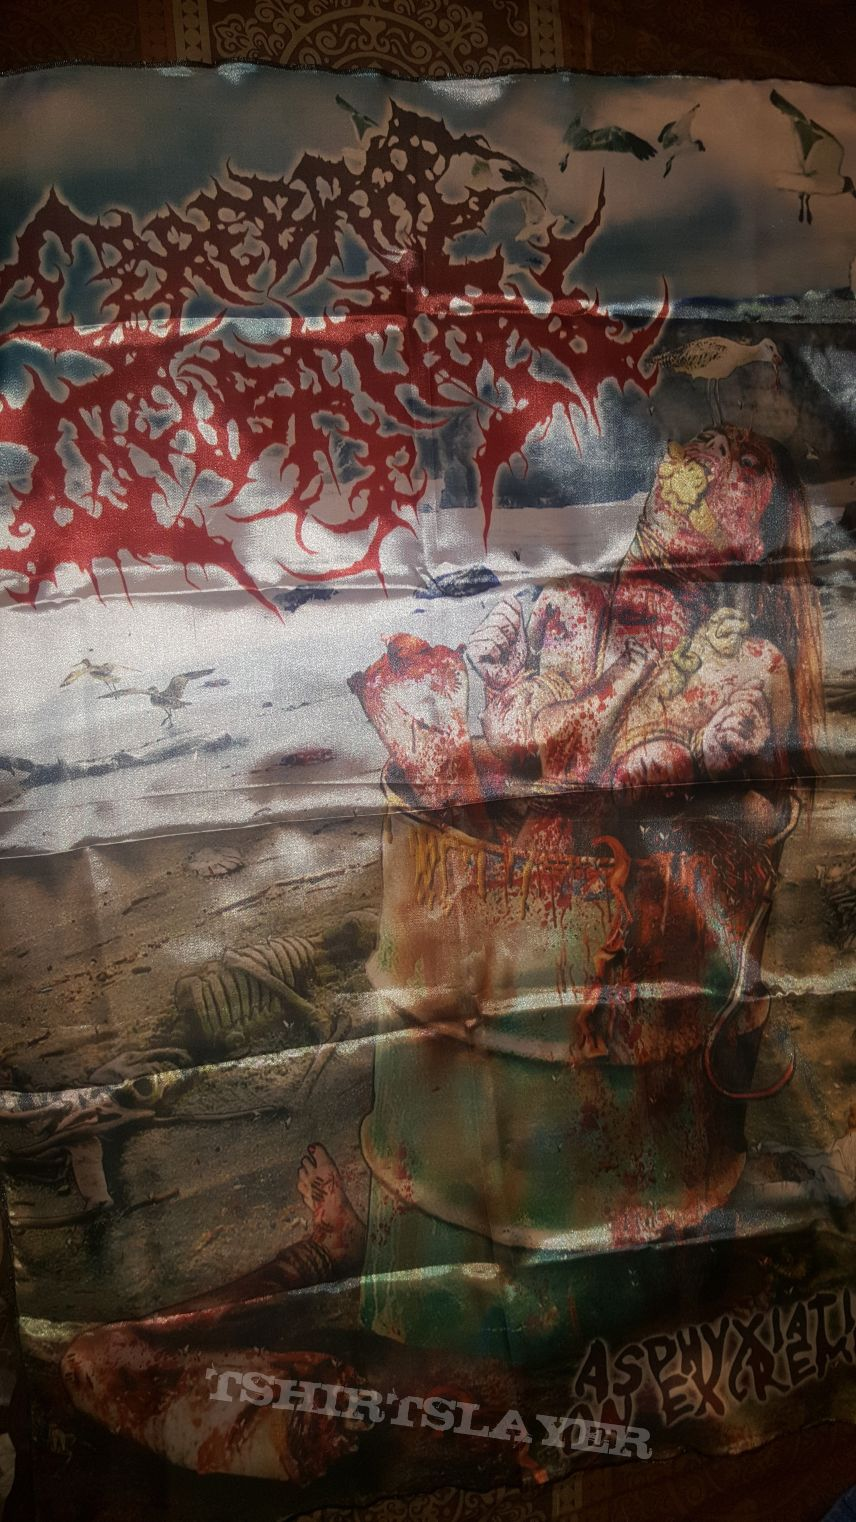 Cerebral Incubation - Asphyxiating on Excrement FLAG